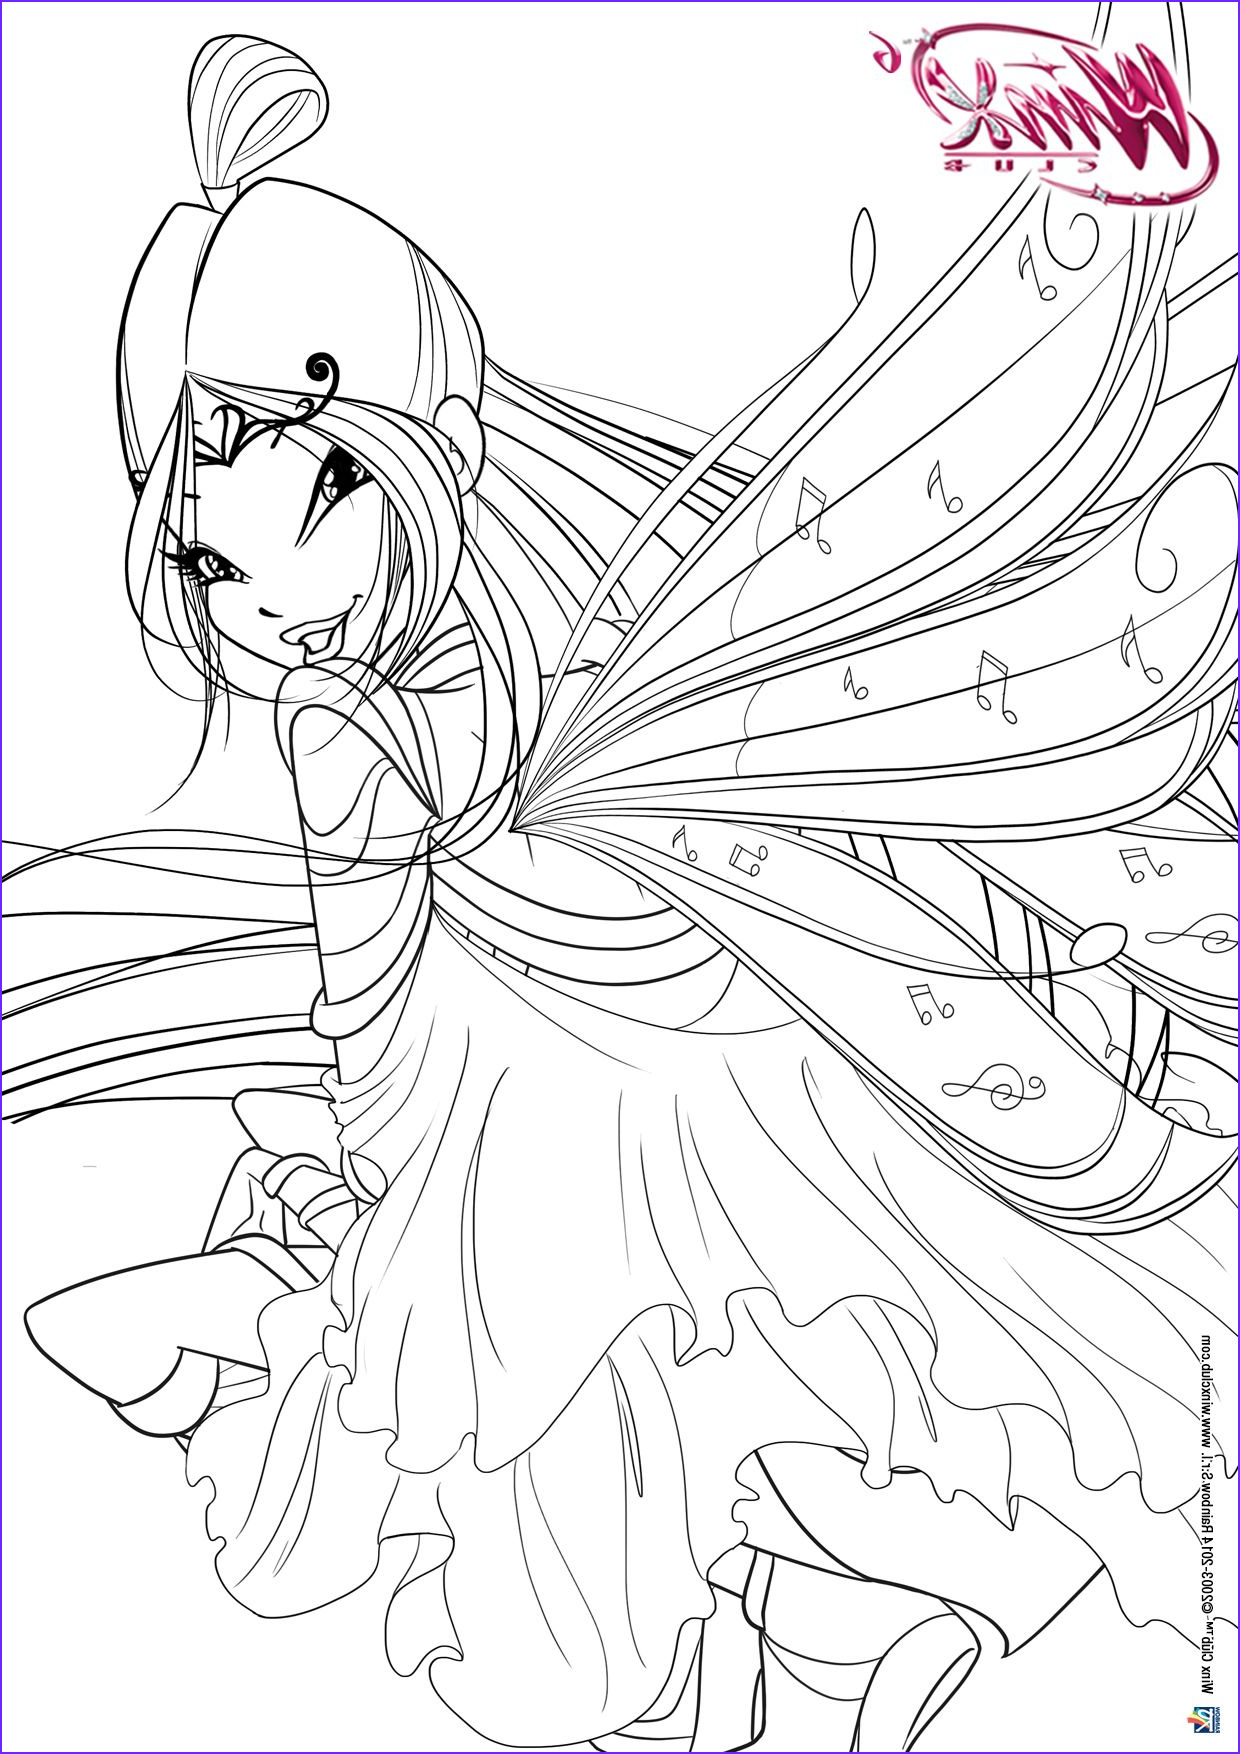 Coloring Book Clubs Cool Image Winx Club Tumblr Winx Club Pinterest